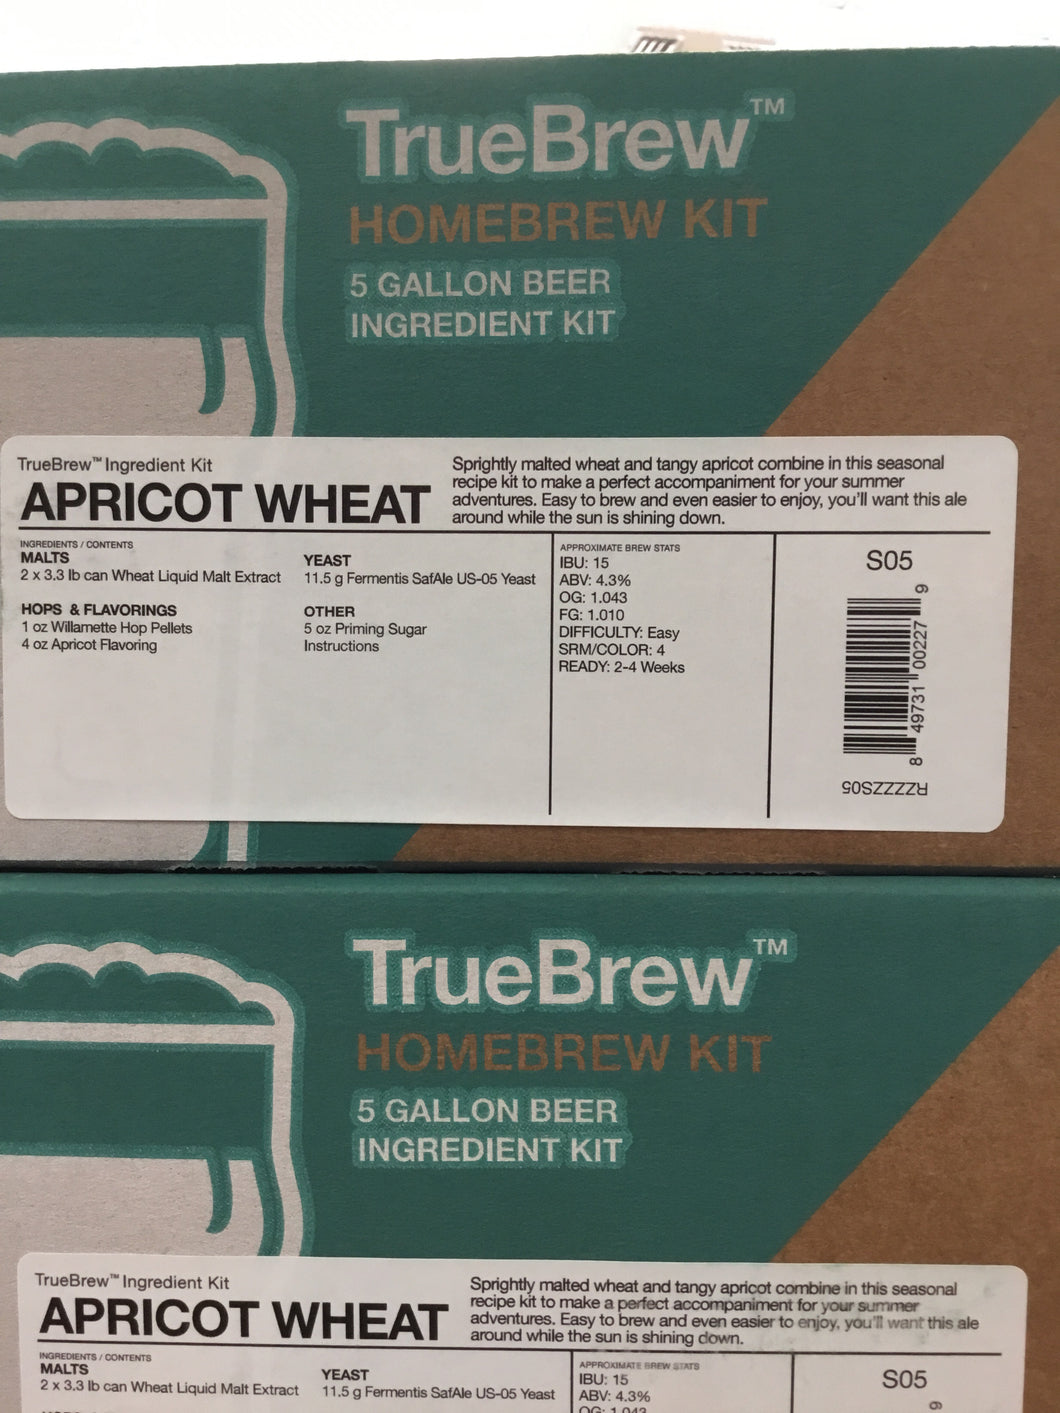 TrueBrew Apricot Wheat Kit